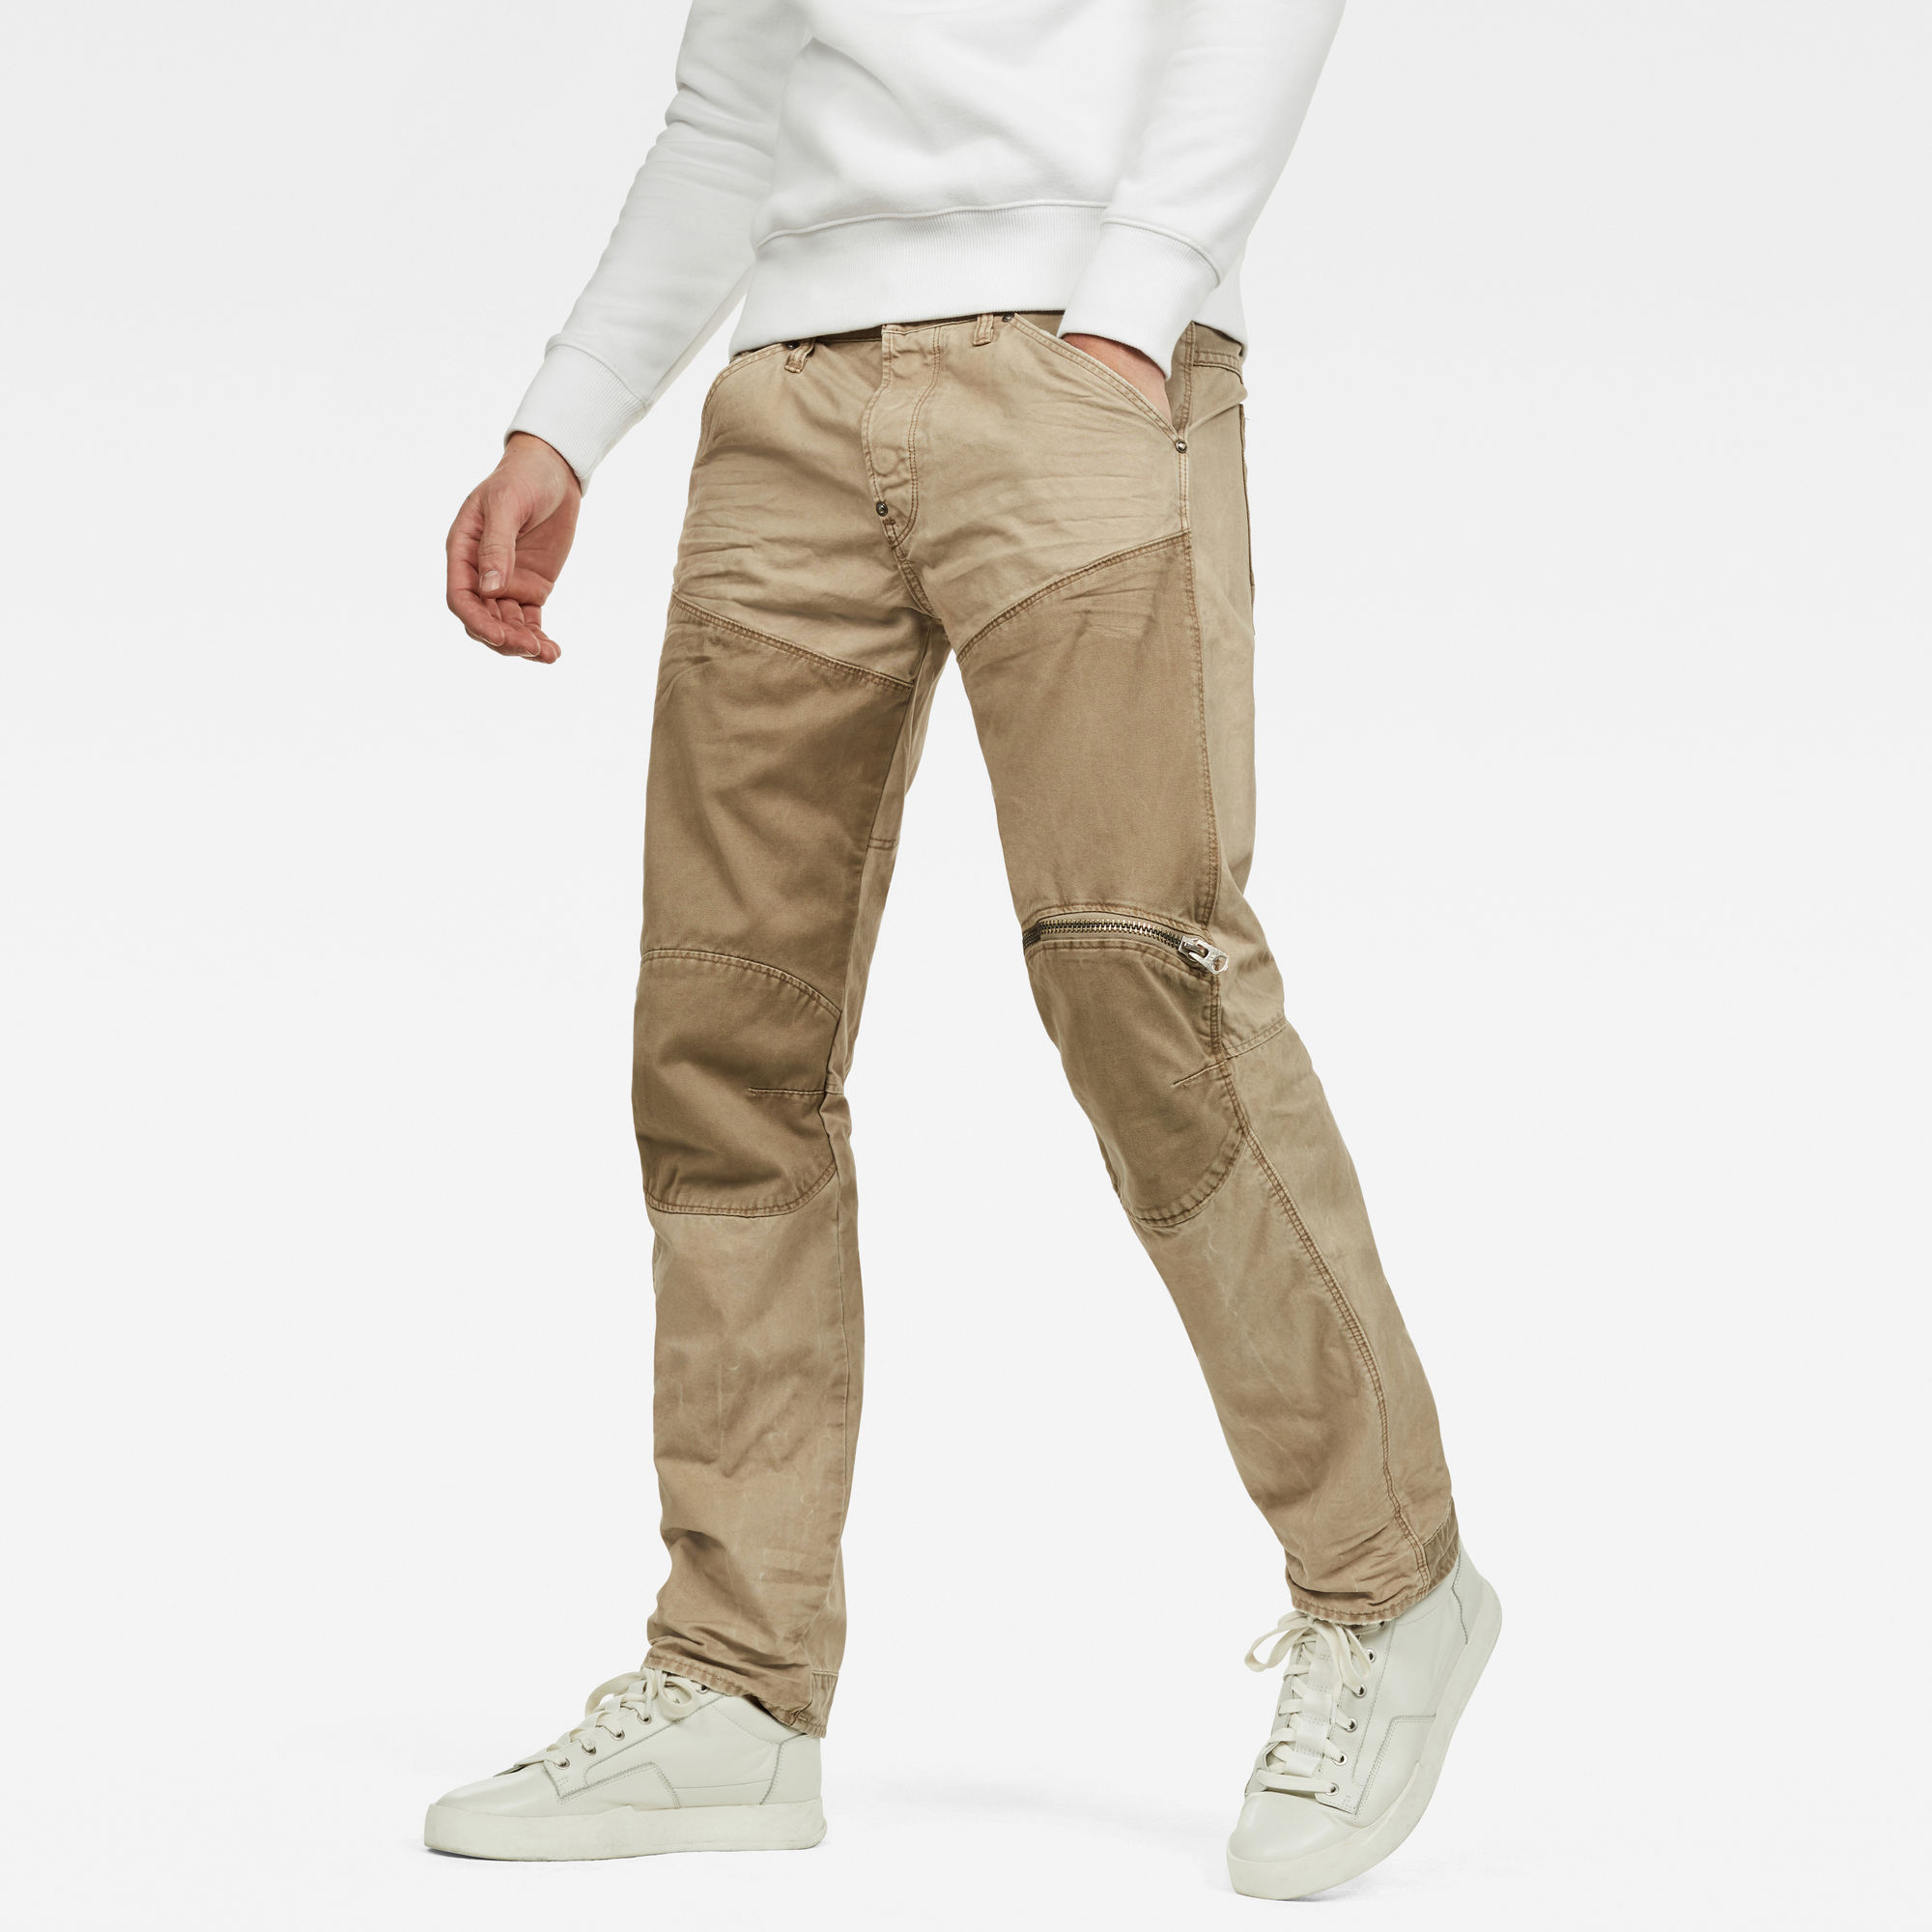 Image of G Star Raw 5620 G-Star Elwood Workwear 3D Zip Straight Trousers